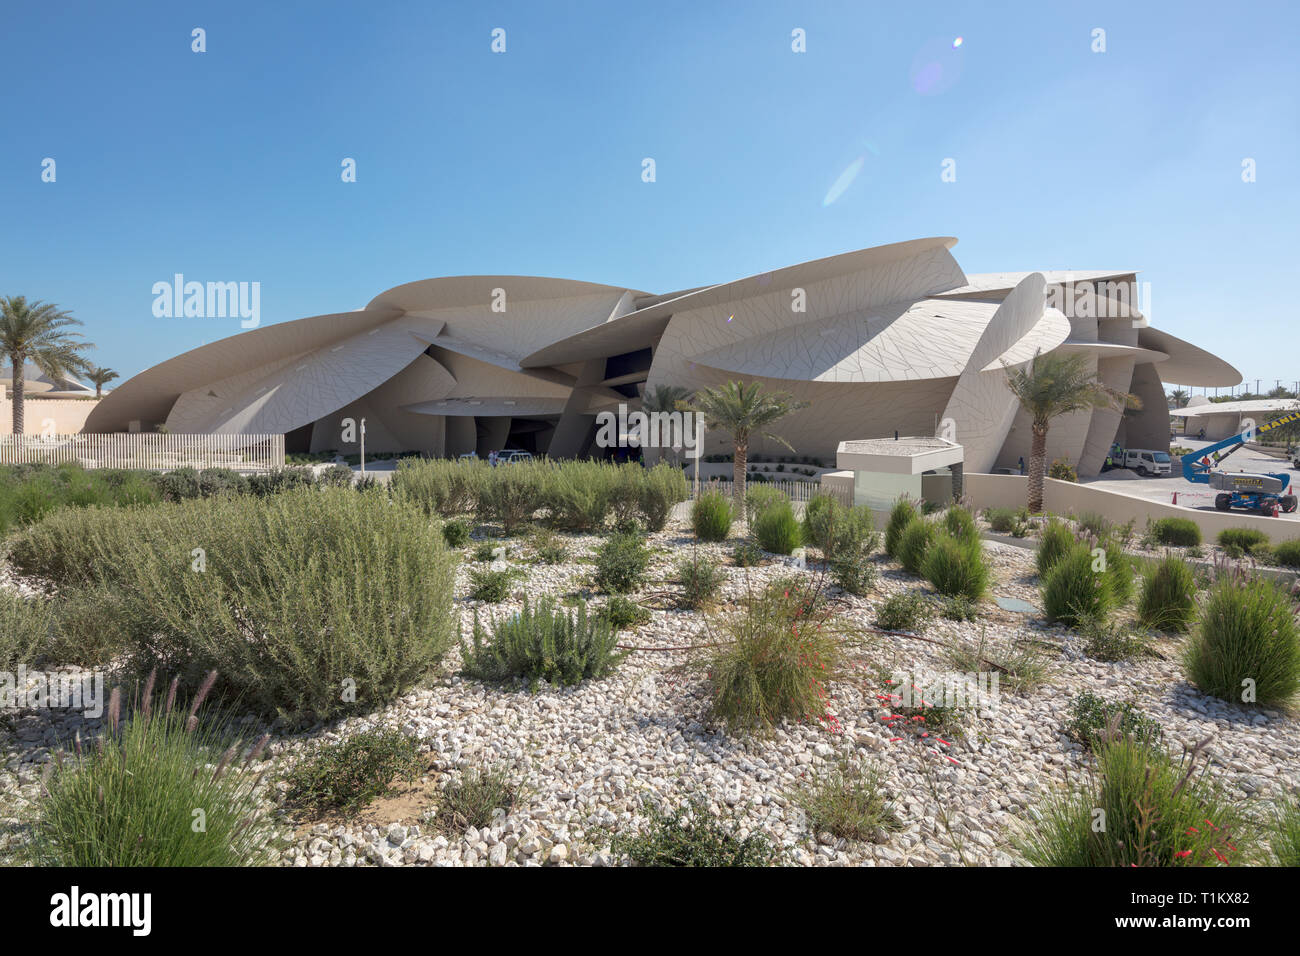 construction work on The National Museum of Qatar in Doha, Qatar,  just prior to its opening in March 2019 - Stock Image